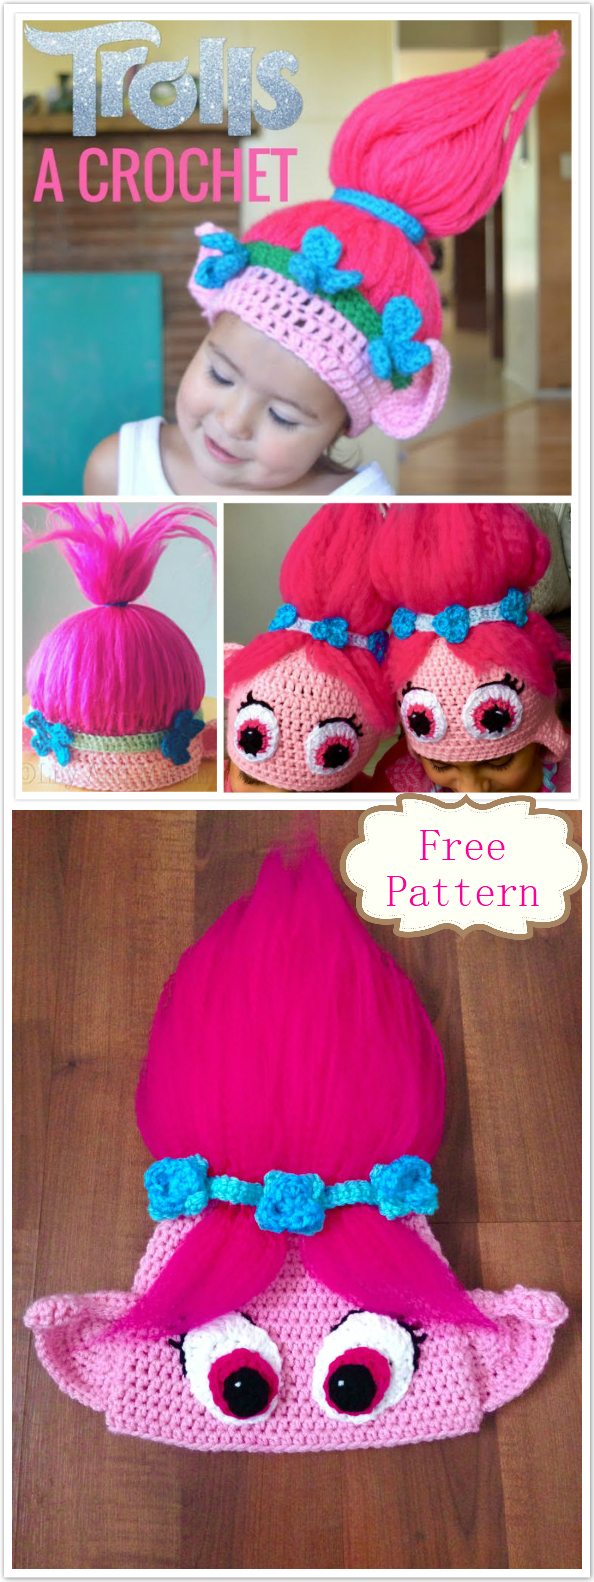 Trolls Crochet Pattern Cool Design Inspiration